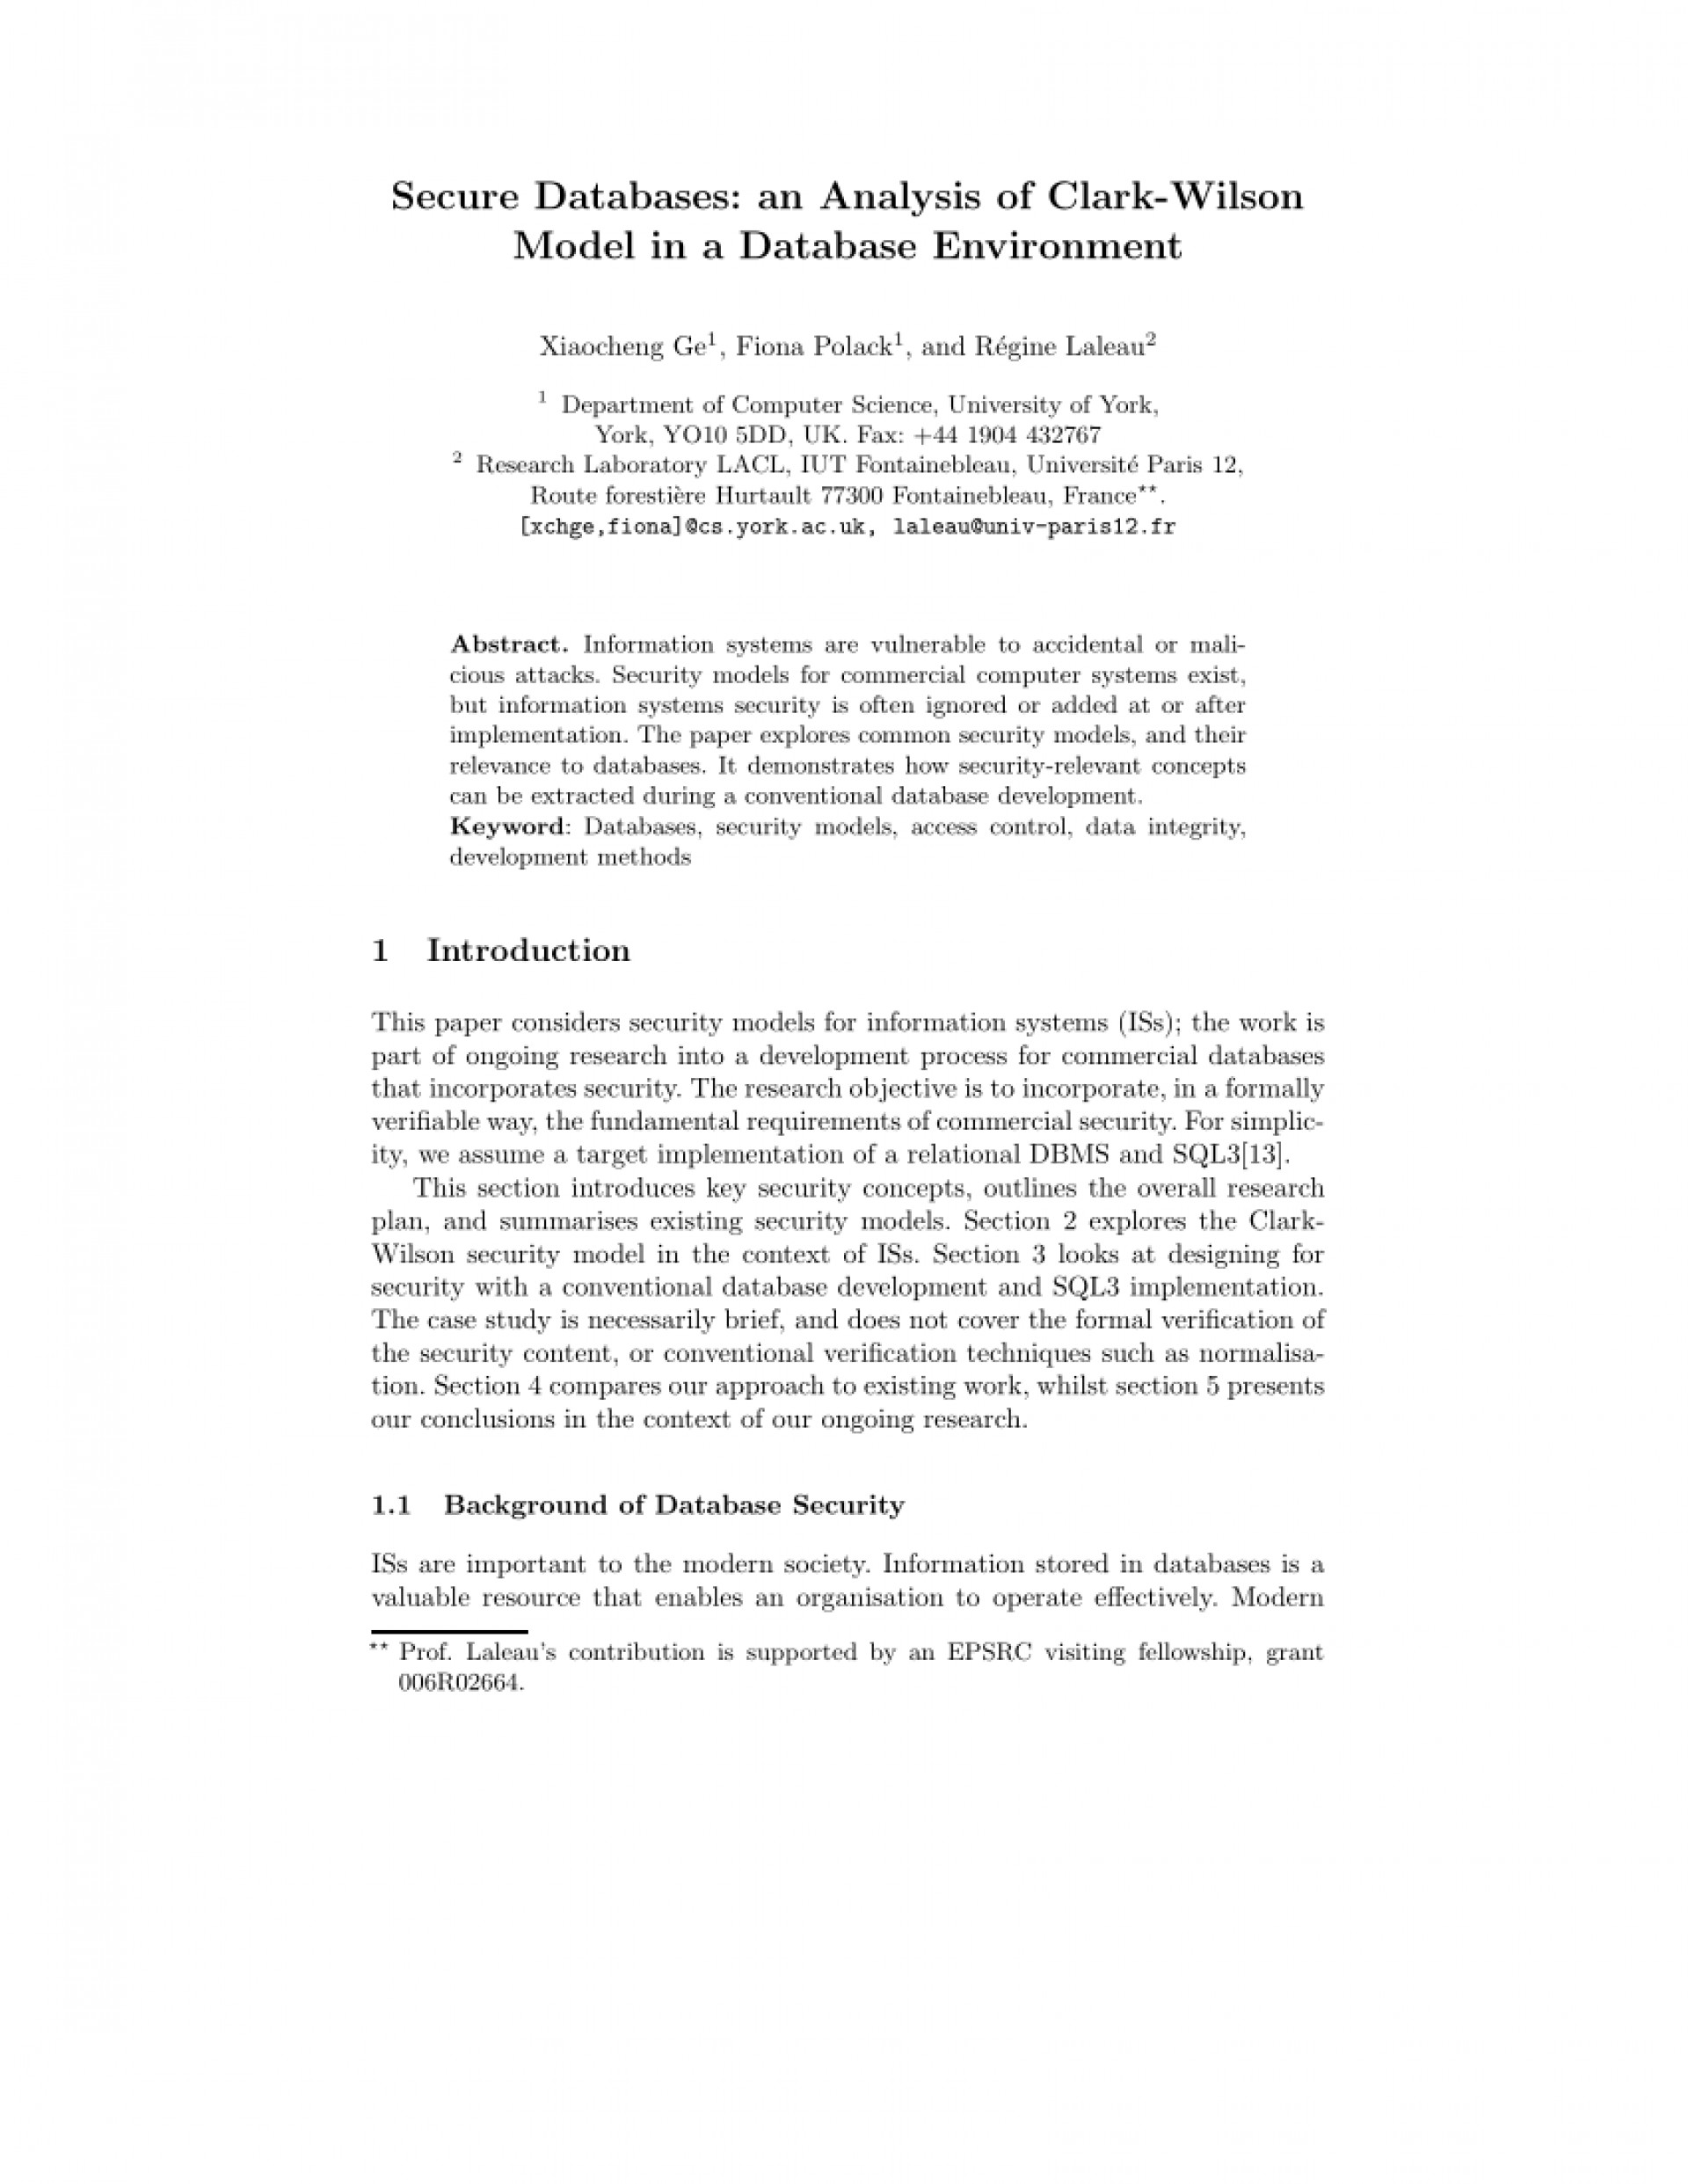 006 Research Paper Largepreview Database Striking Security Ieee Pdf - Draft 1920